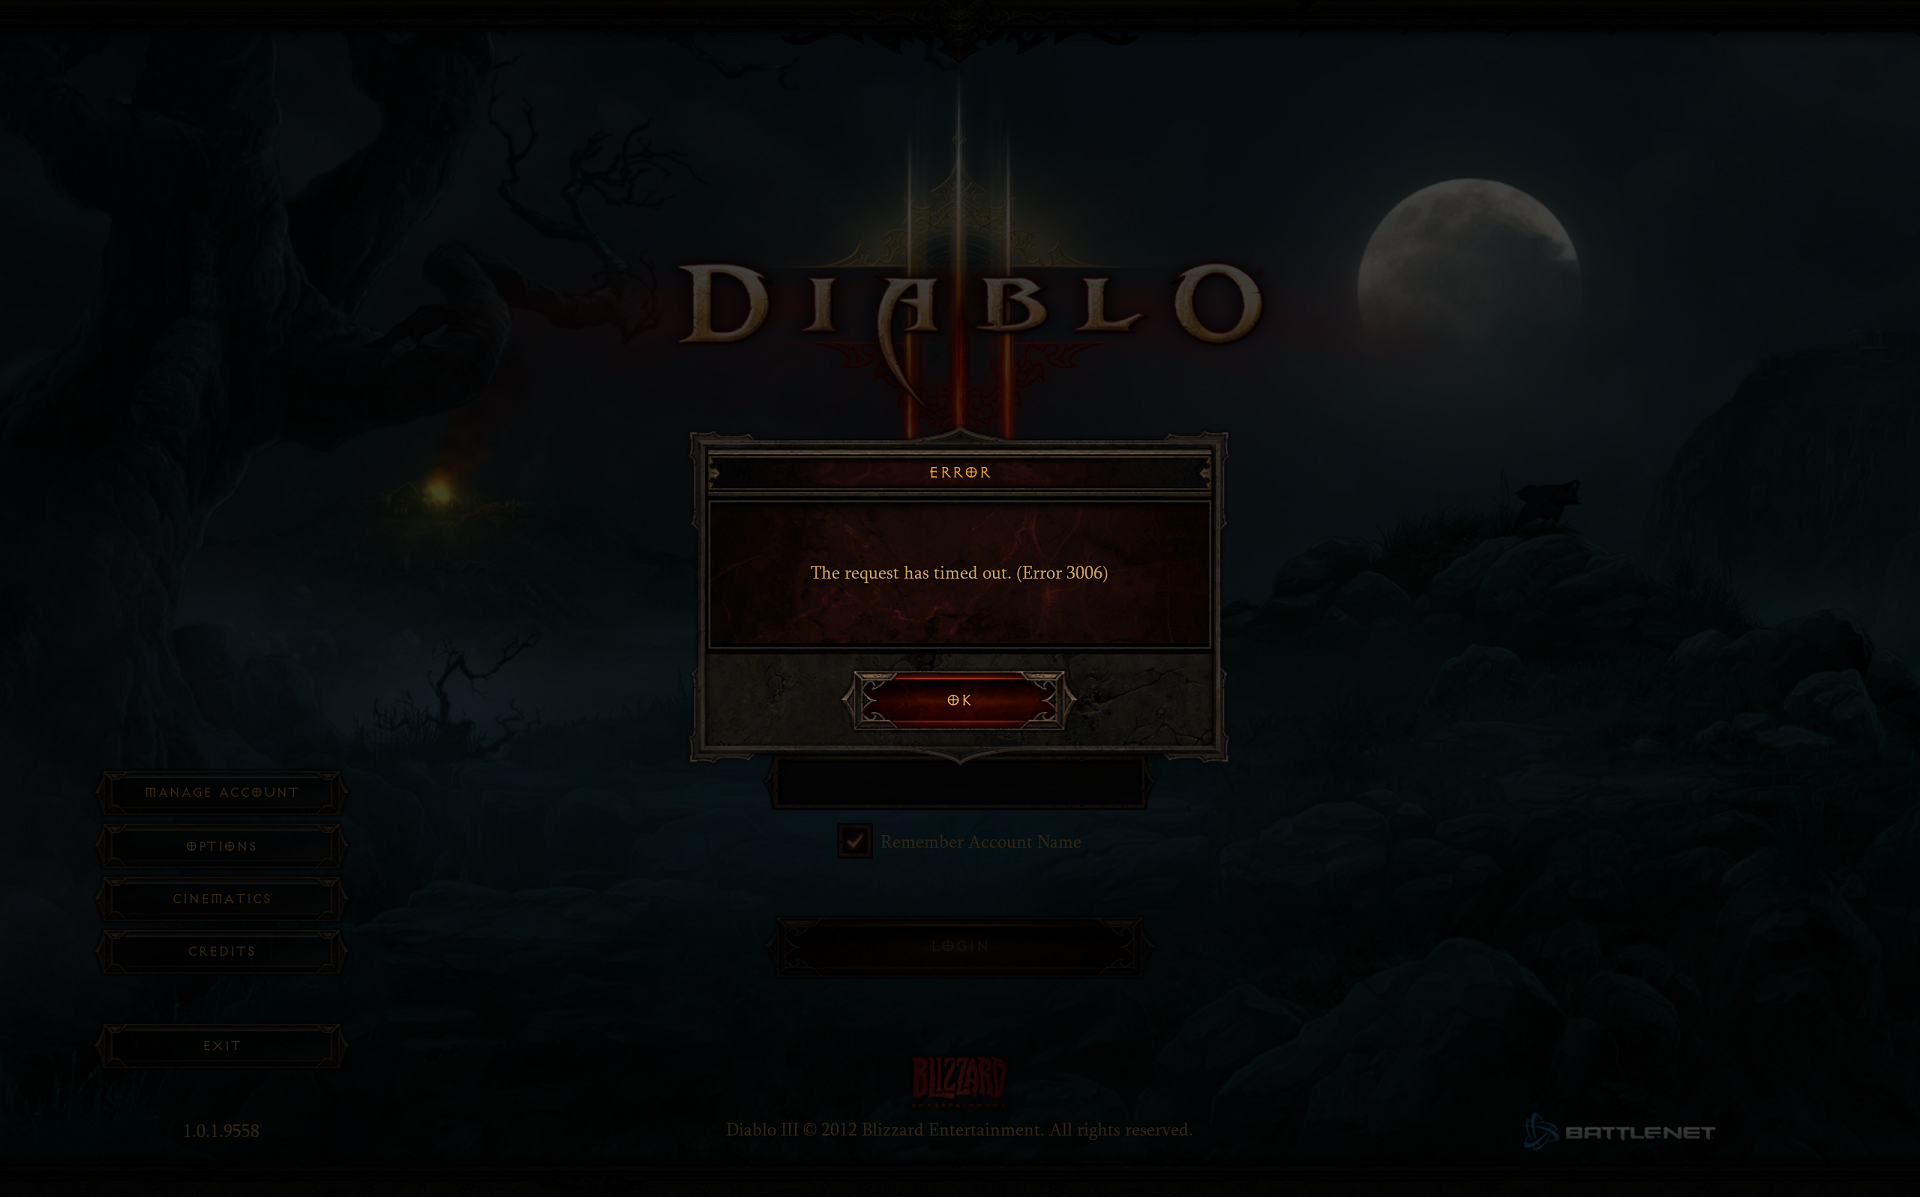 boyiee games that diablo said morhaime have game with update esport sure make designed making world really from player blizzard different esports thats things starcraft right depth look balanced strategies strategy successful continued professional tournament creating very ways people compete structure around need order in something like everything